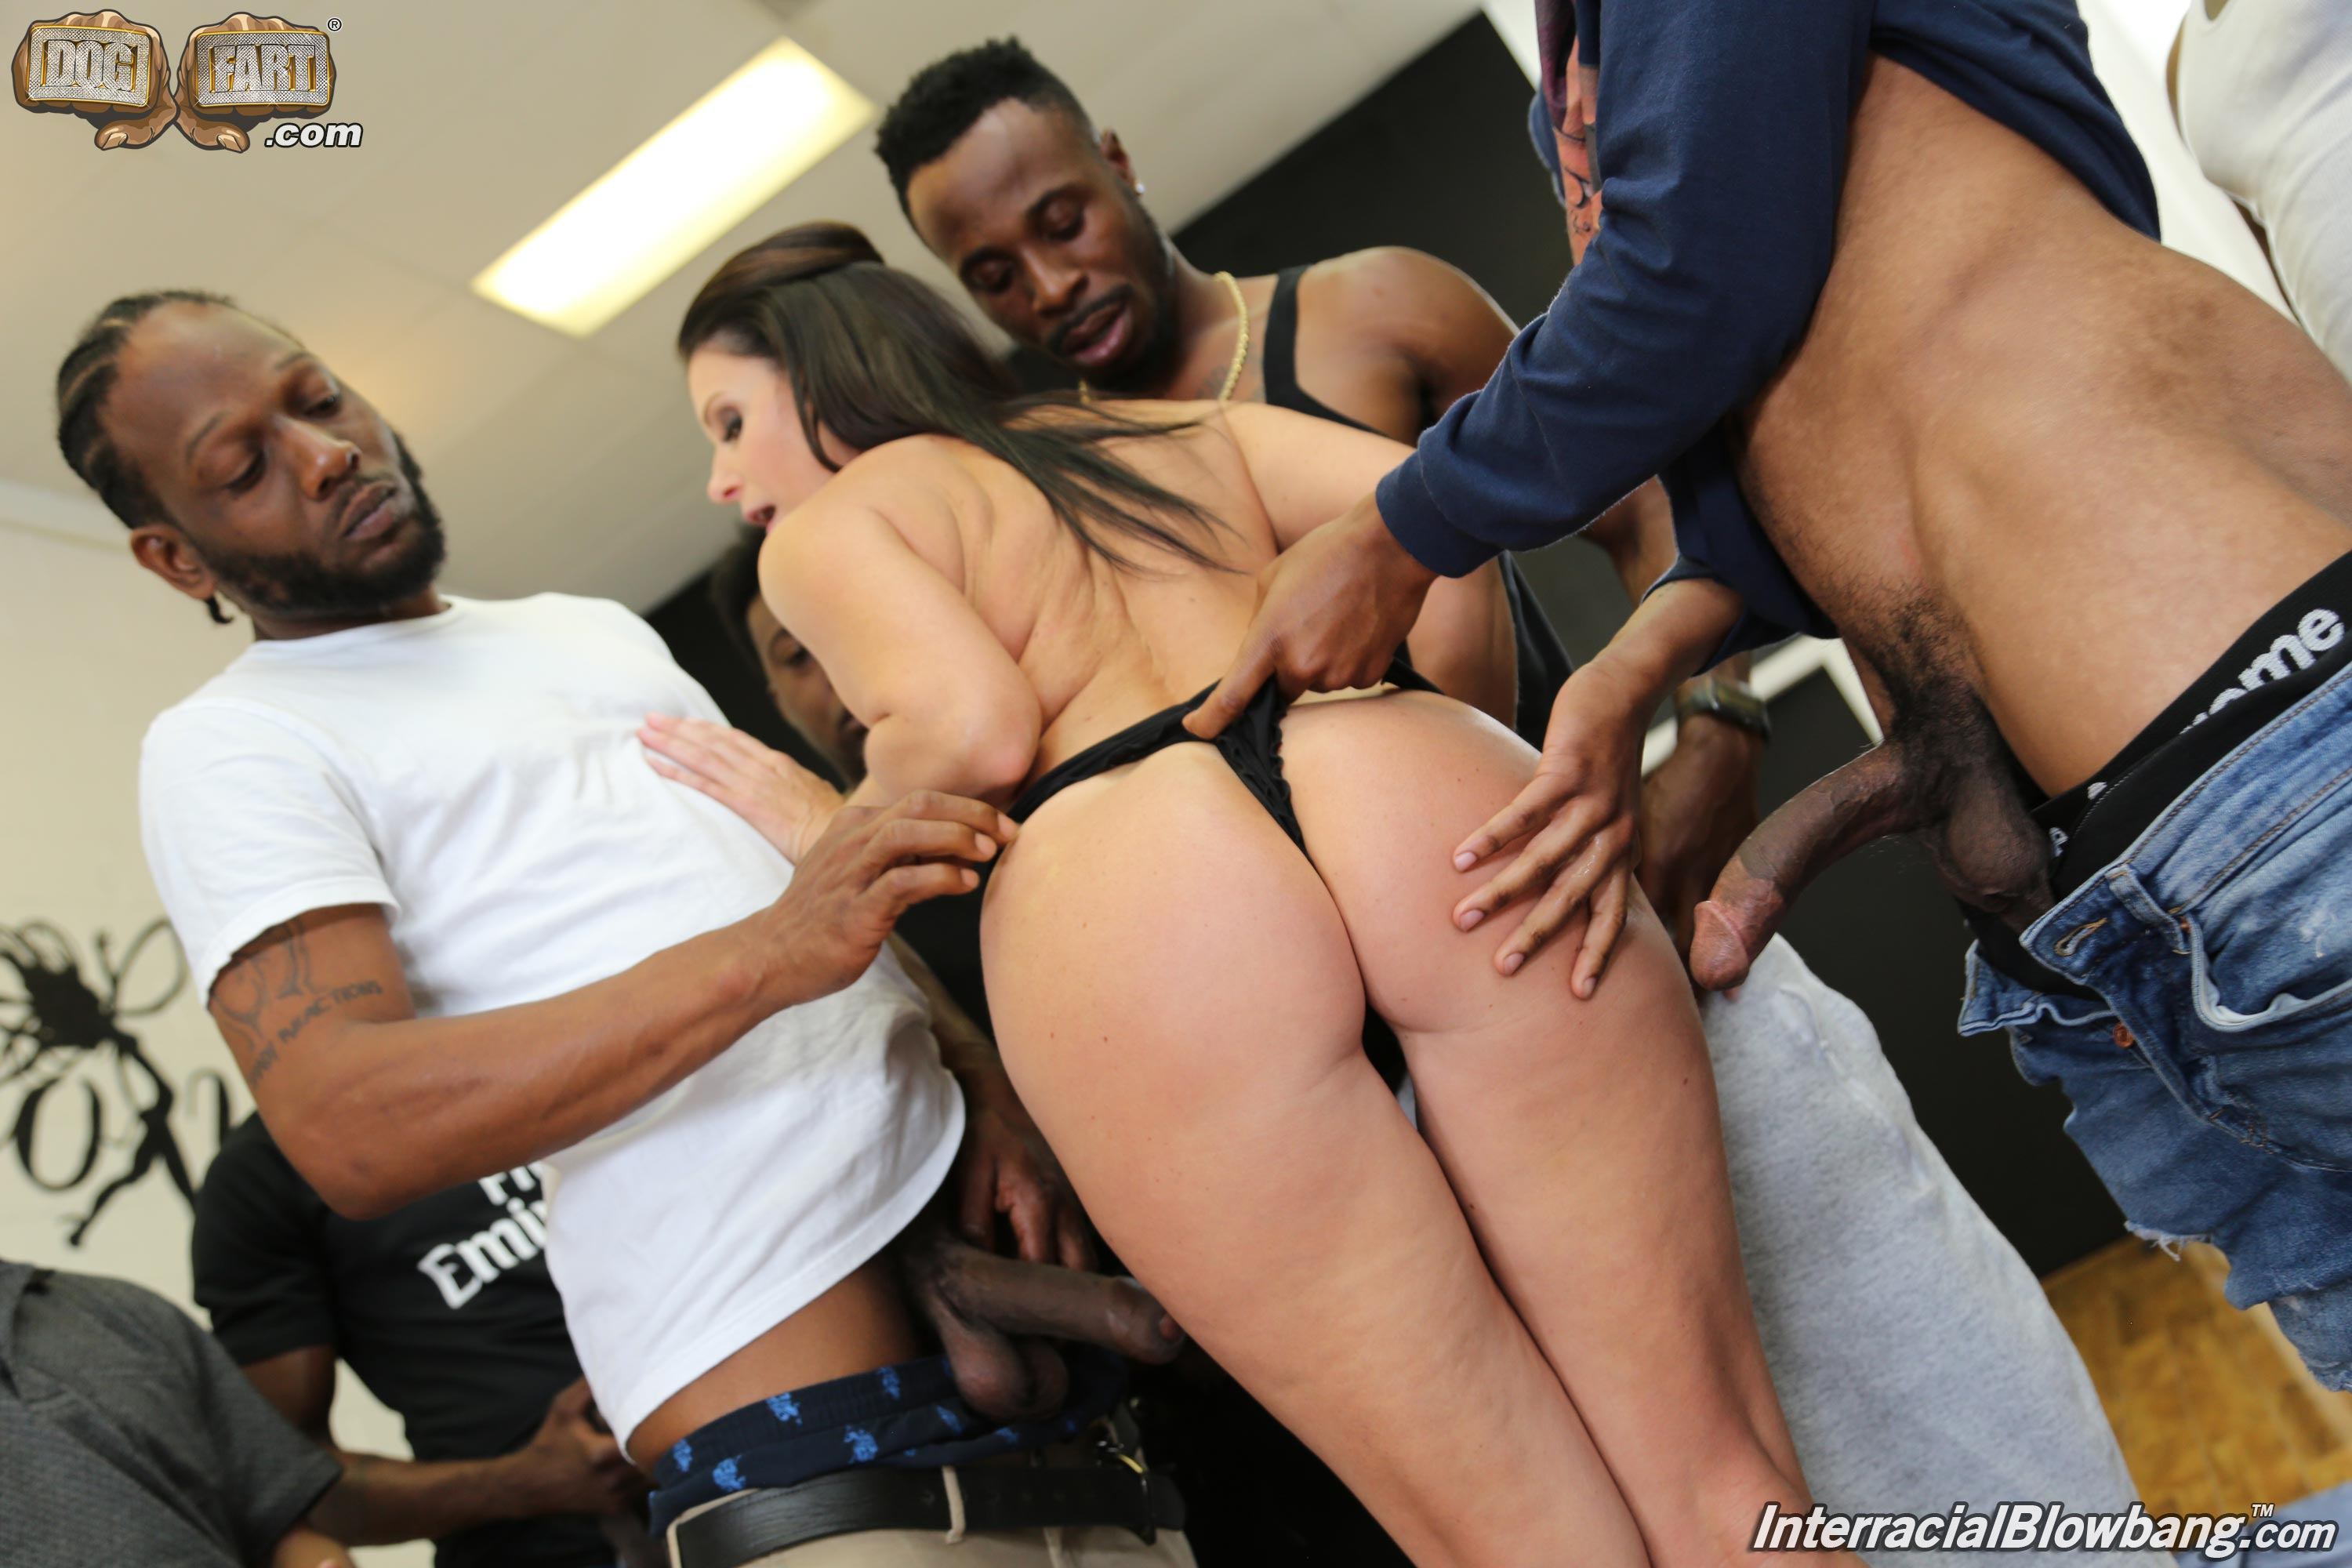 Muscle Man Overload Ecstasy Helpless Nude Naked Porn Xxx ▷ india summer in india summer - interracial blowbang